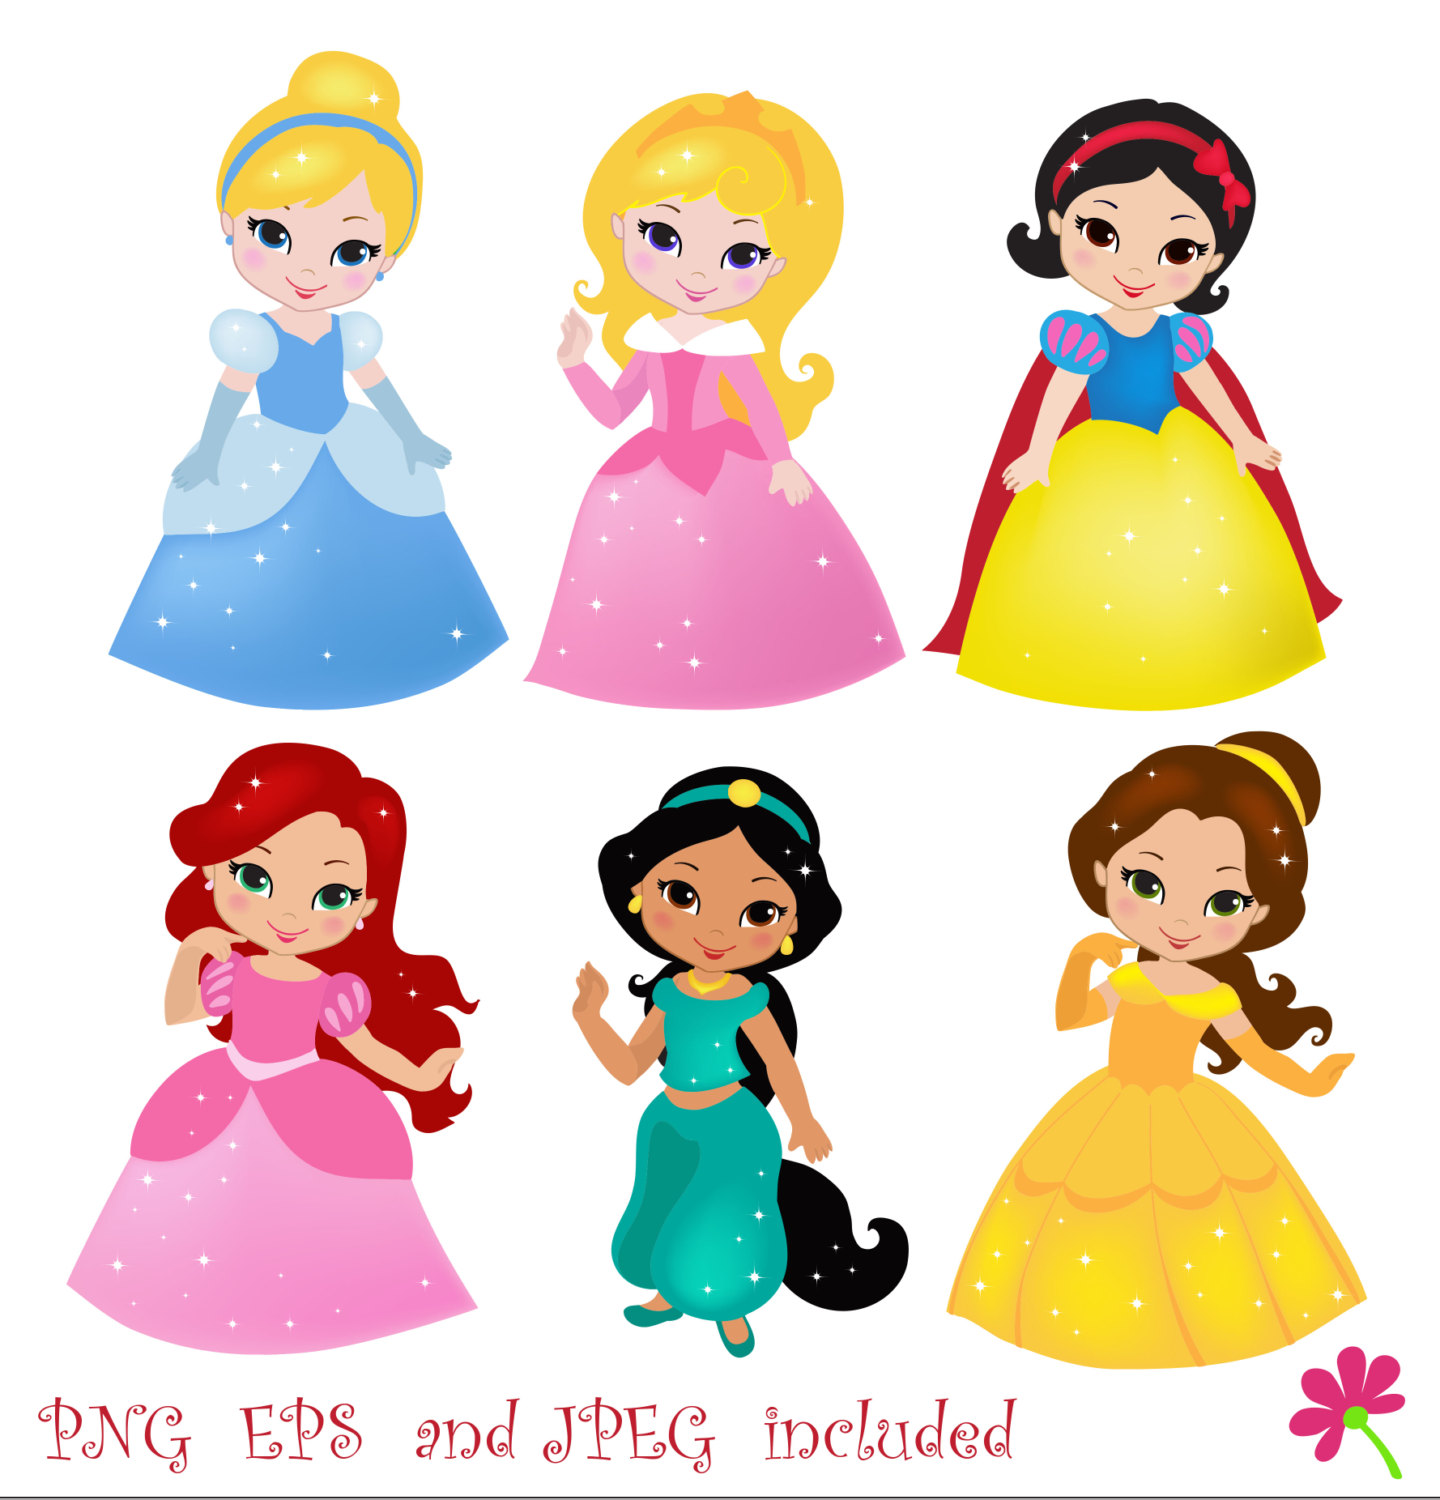 Disney belle frame clipart svg Disney belle frame clipart - ClipartFox svg